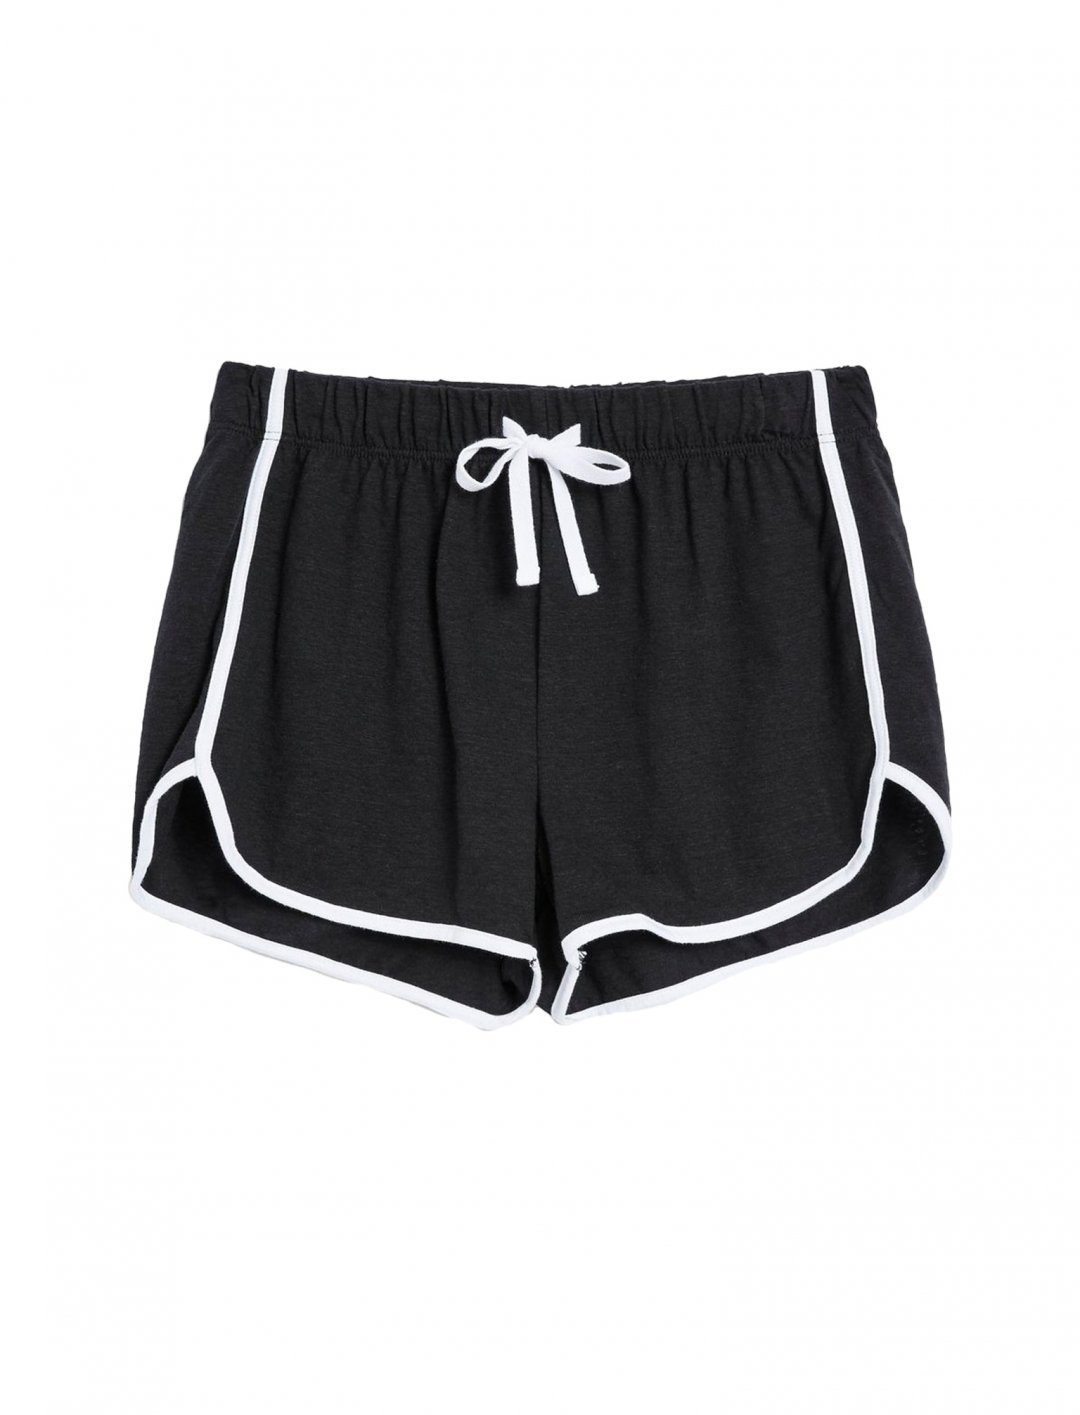 "Topshop Runner Shorts {""id"":5,""product_section_id"":1,""name"":""Clothing"",""order"":5} Topshop"